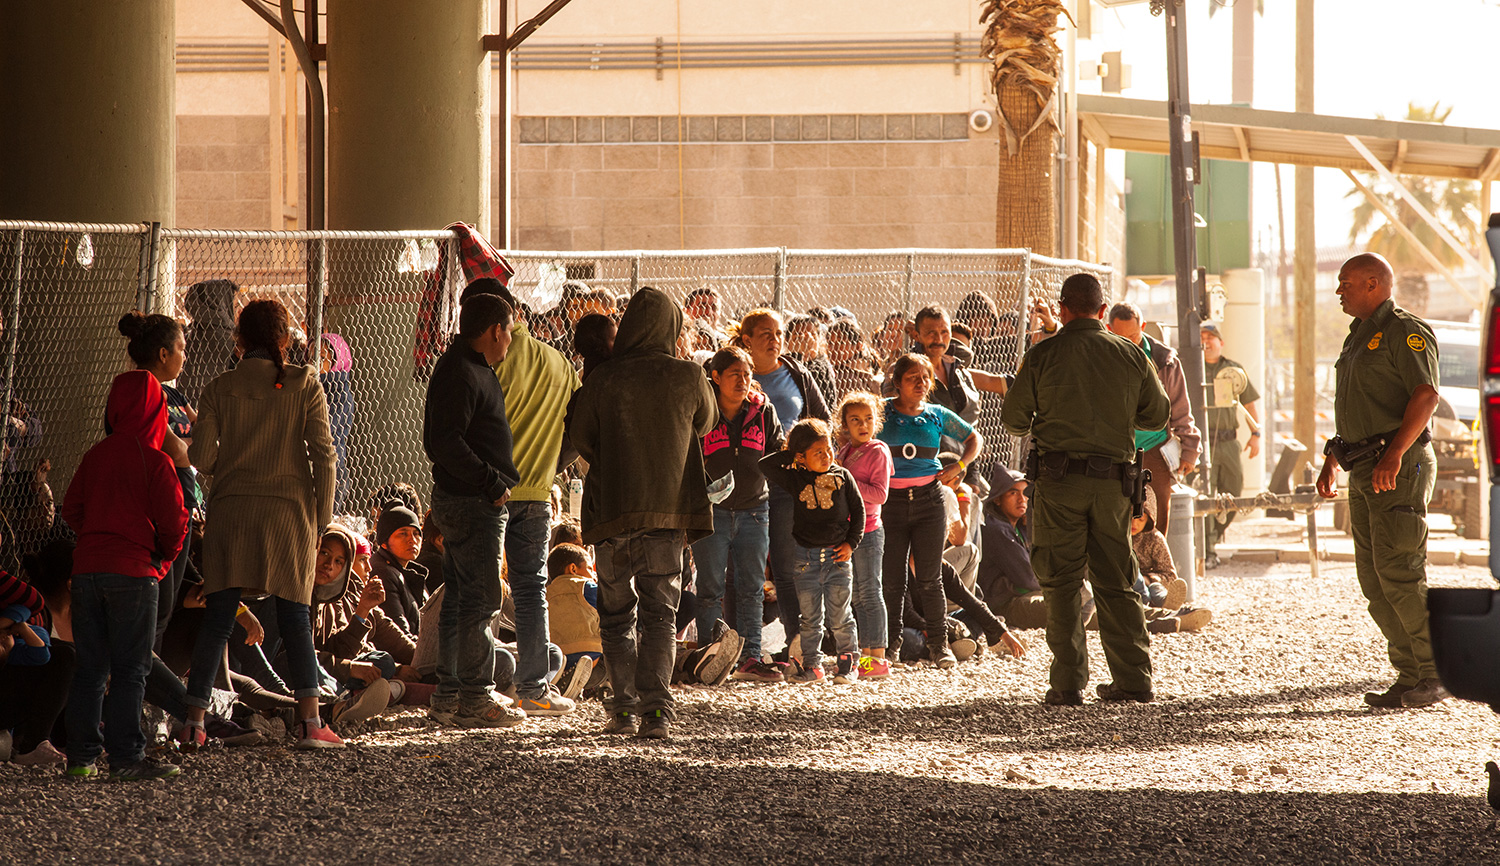 Migrants held in temporary fencing underneath the Paso Del Norte Bridge await processing on March 28, 2019 in El Paso, Texas. Christ Chavez/Getty Images.